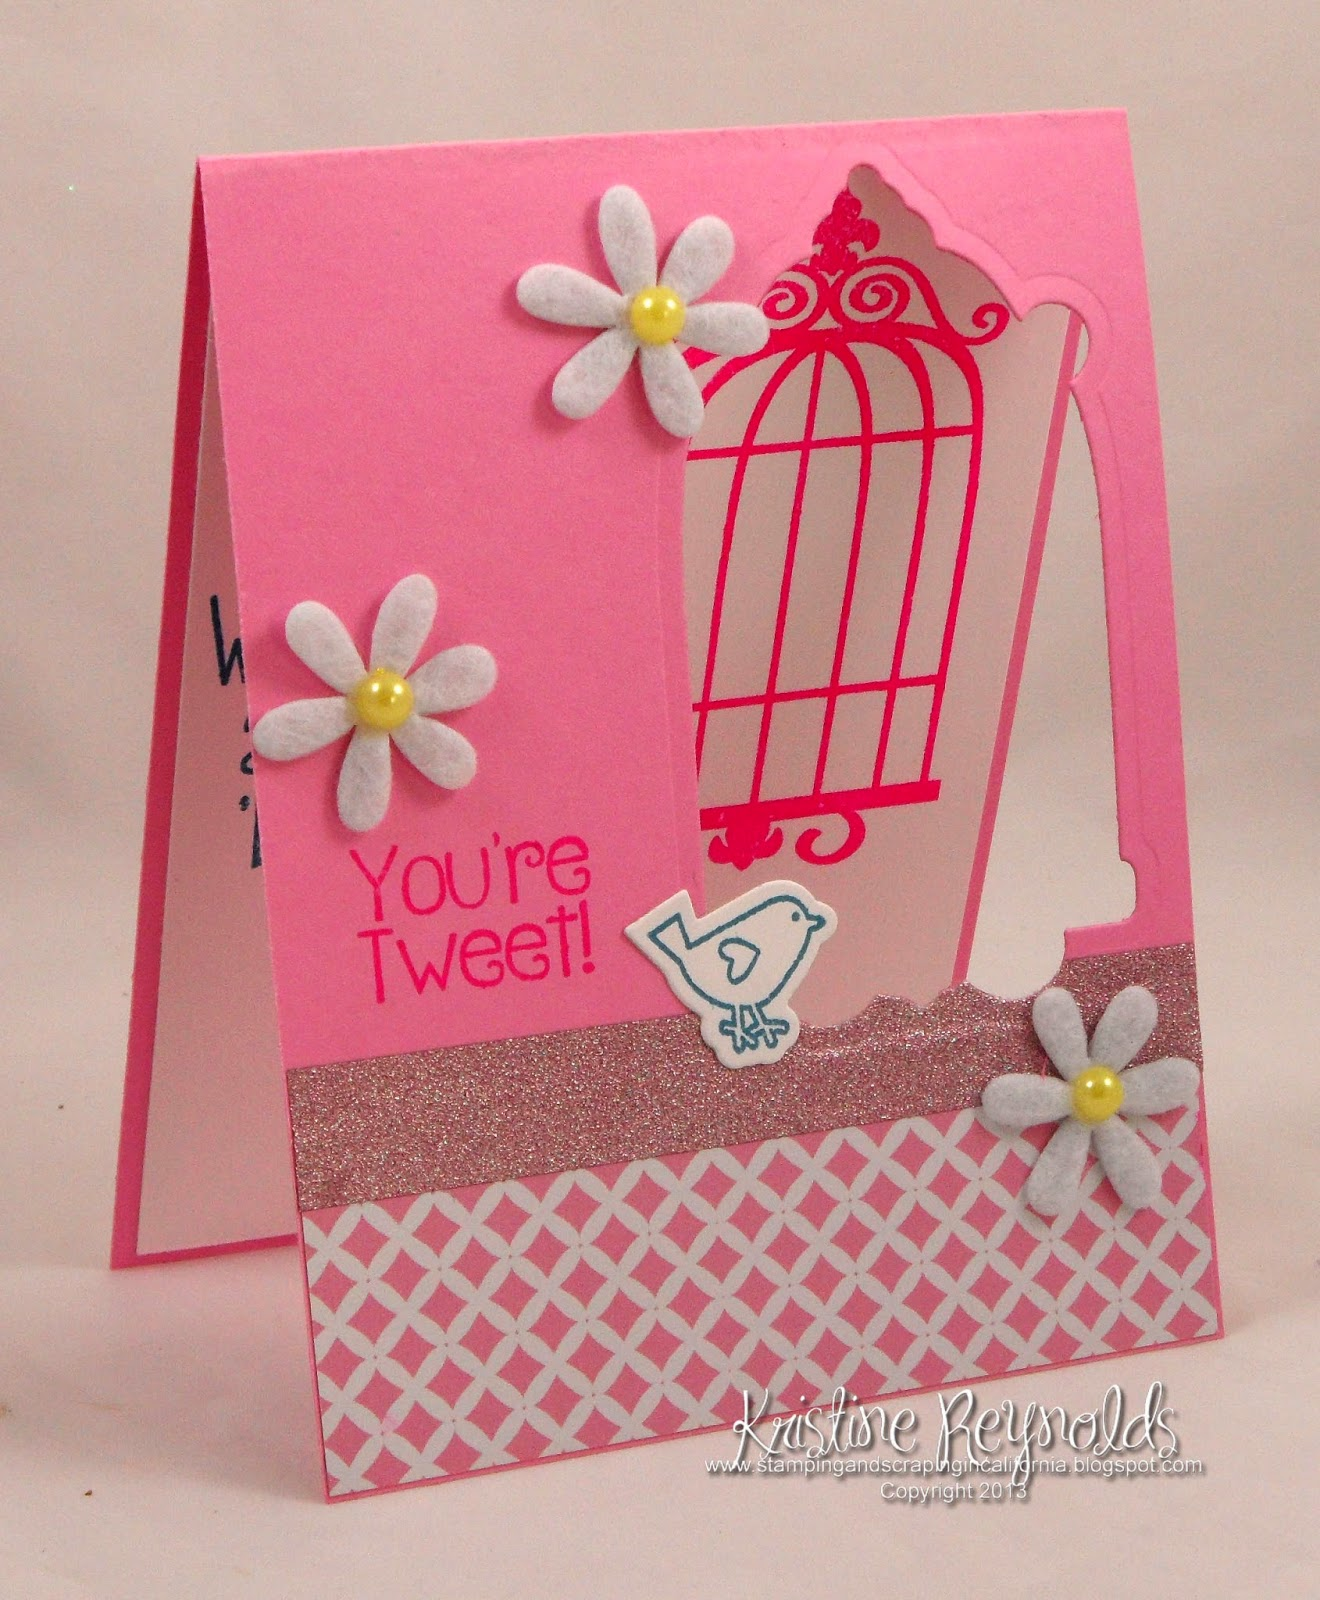 Stamping & Scrapping In California: Birdcage2stamp